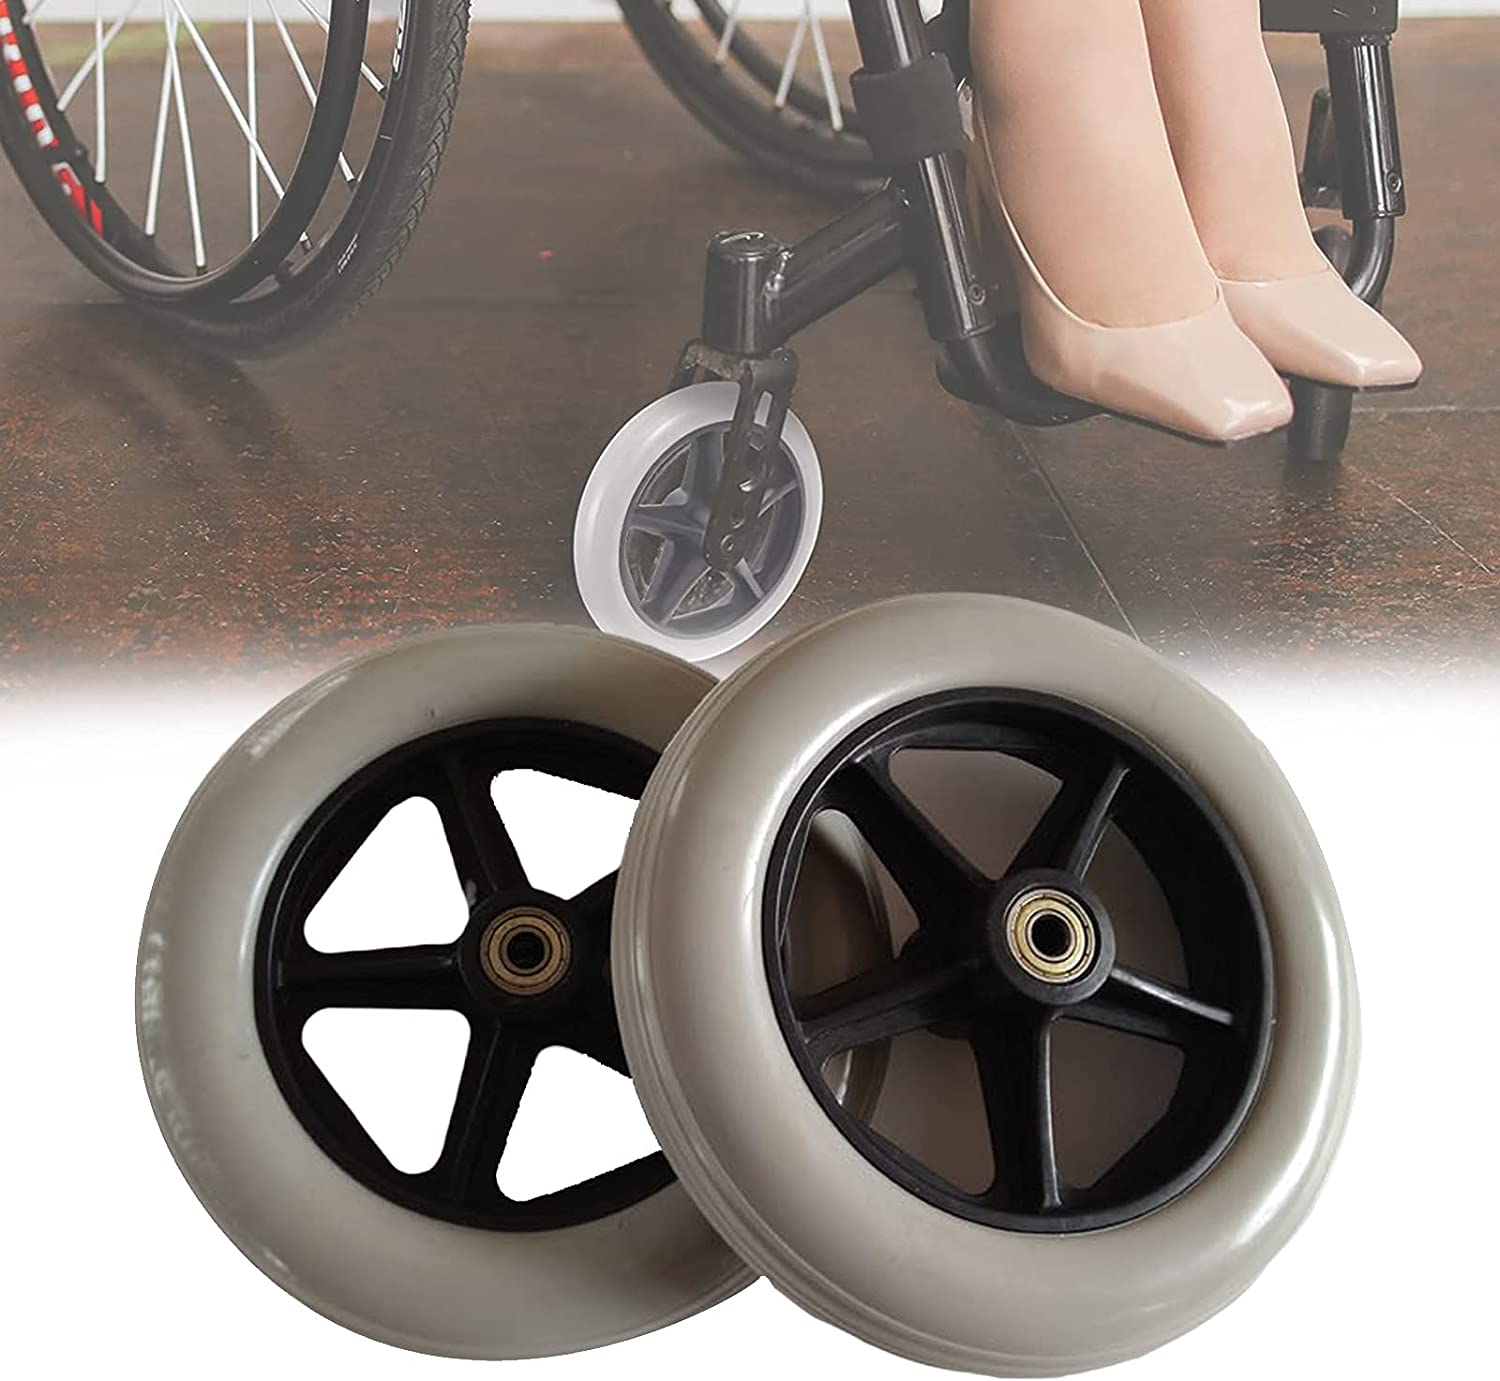 XIAOYUE 2 PCS Very popular Wheelchair Caster Wheel 8 Solid inch Front National uniform free shipping Tires